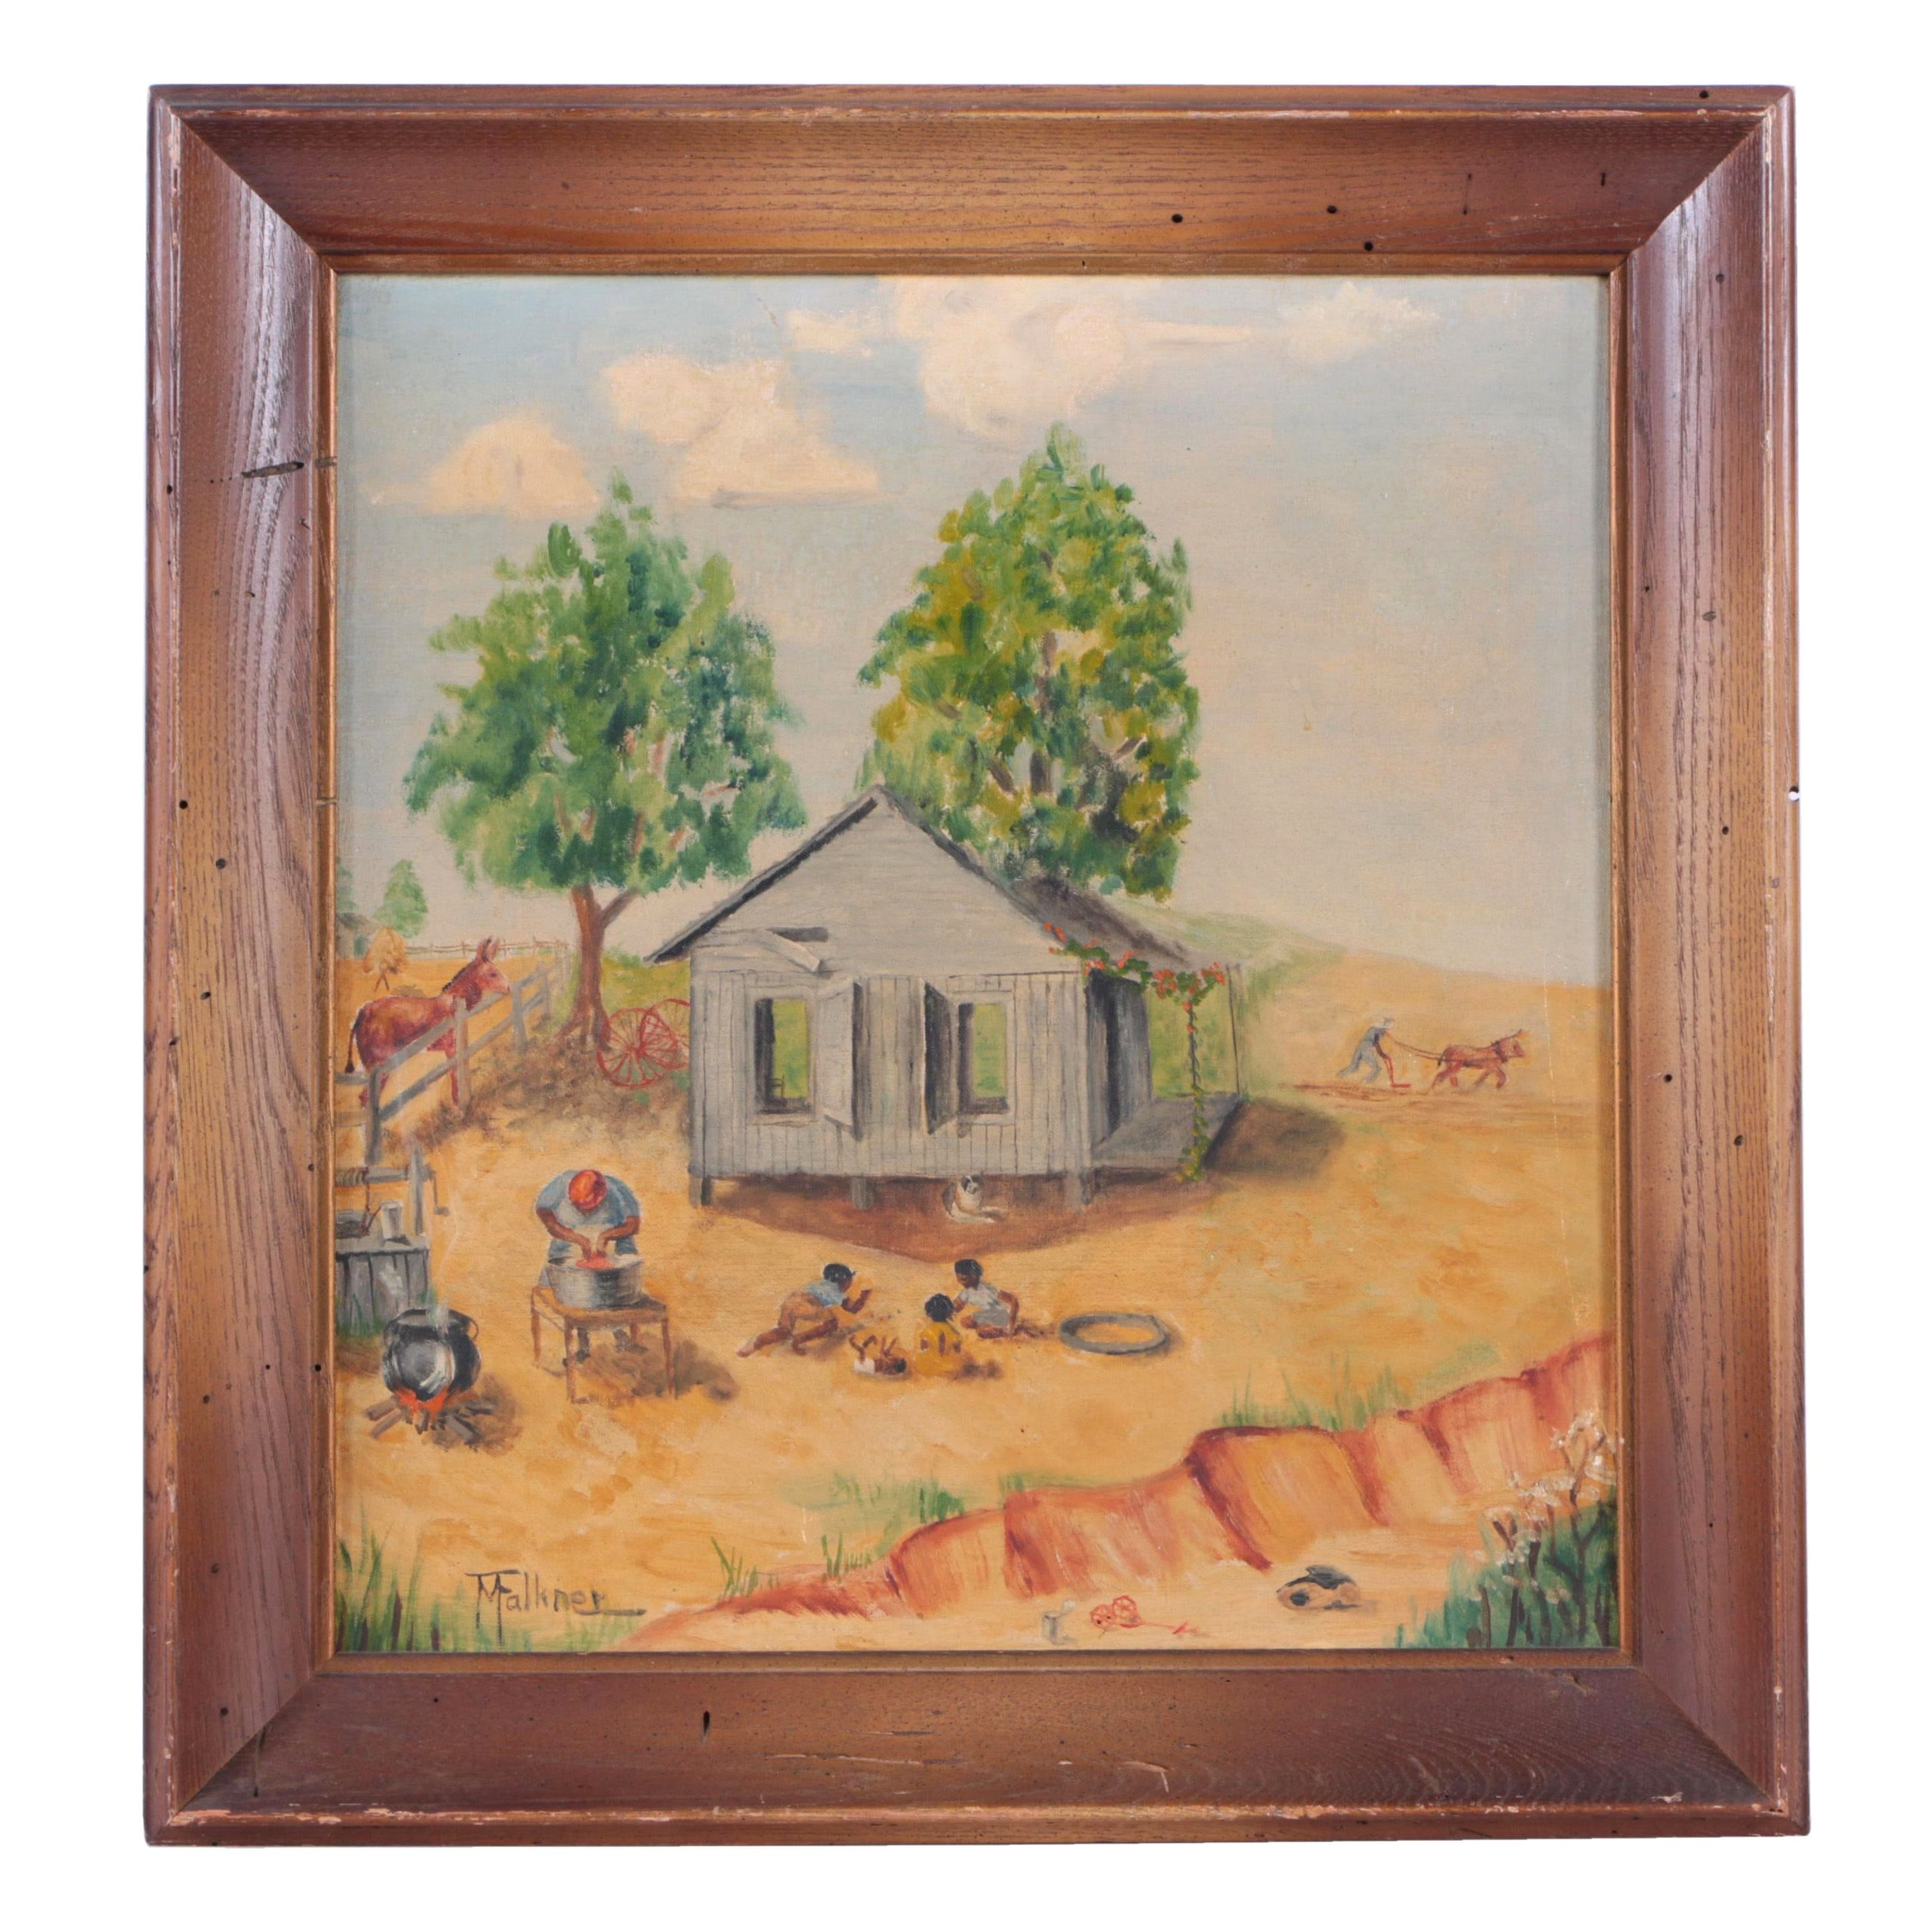 M. Falkner Oil Painting on Canvas Board of a Farm Scene